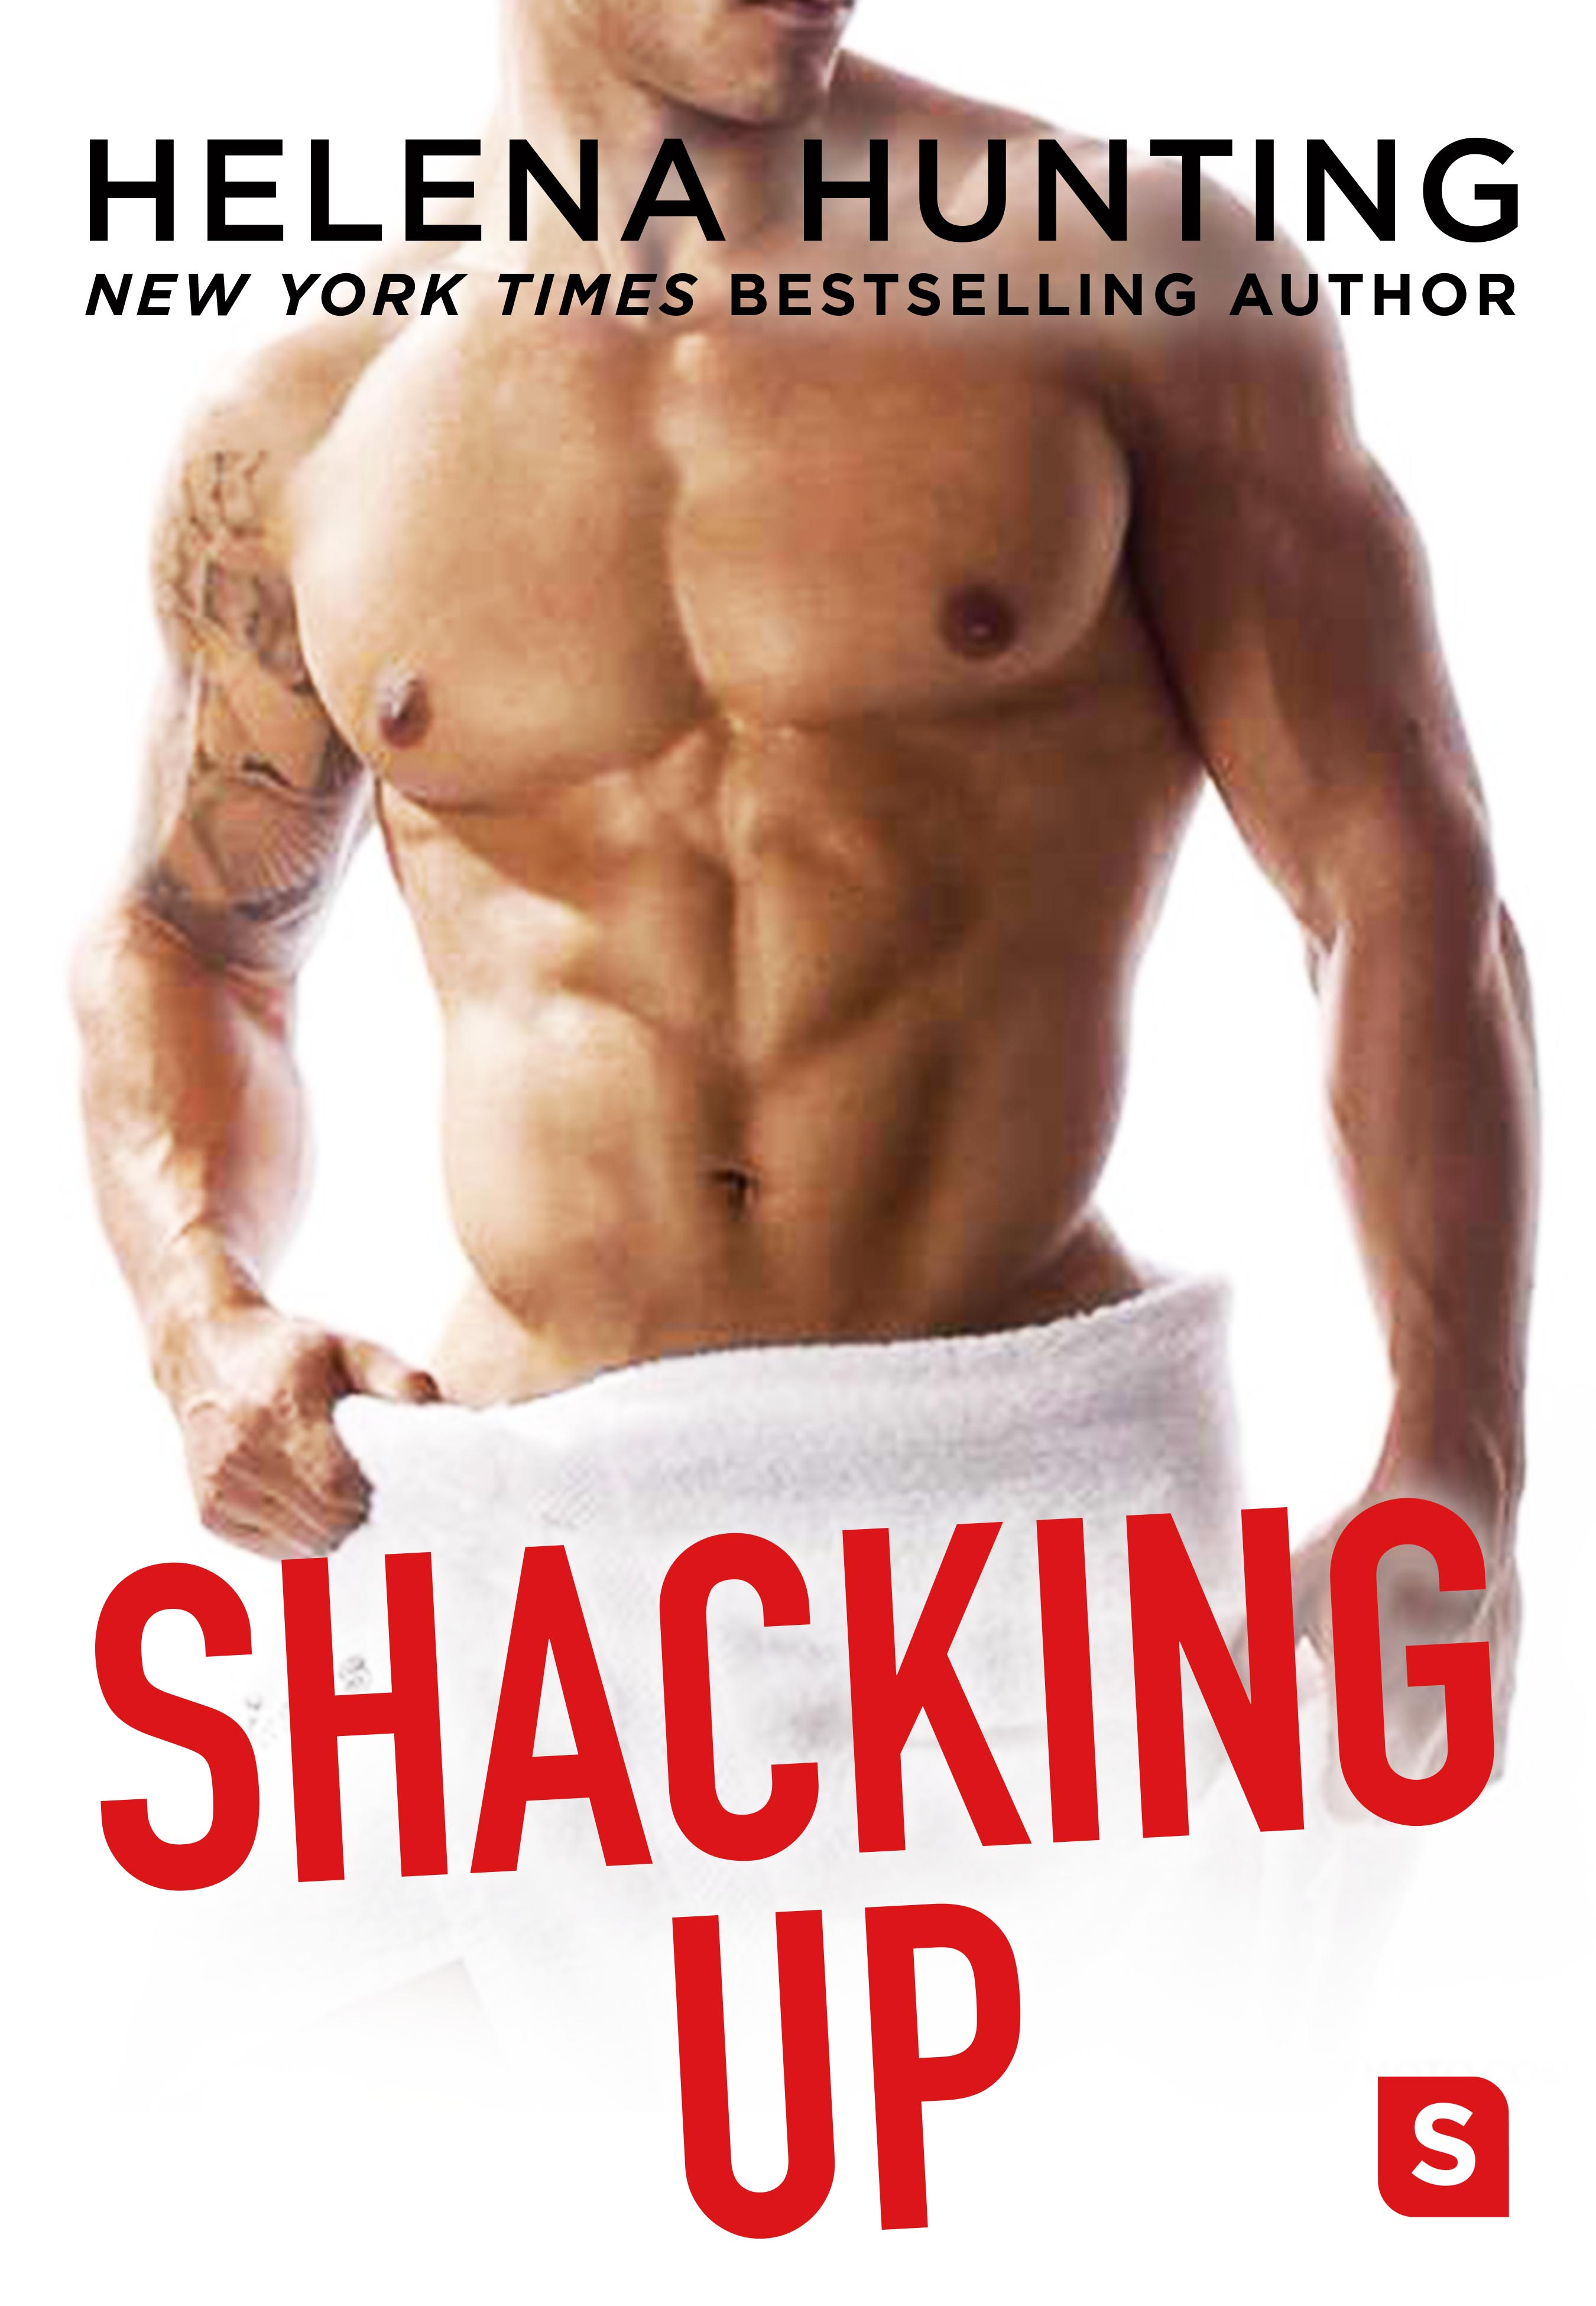 'Shacking Up' by Helena Hunting — My Review & a Q&A with Helena!